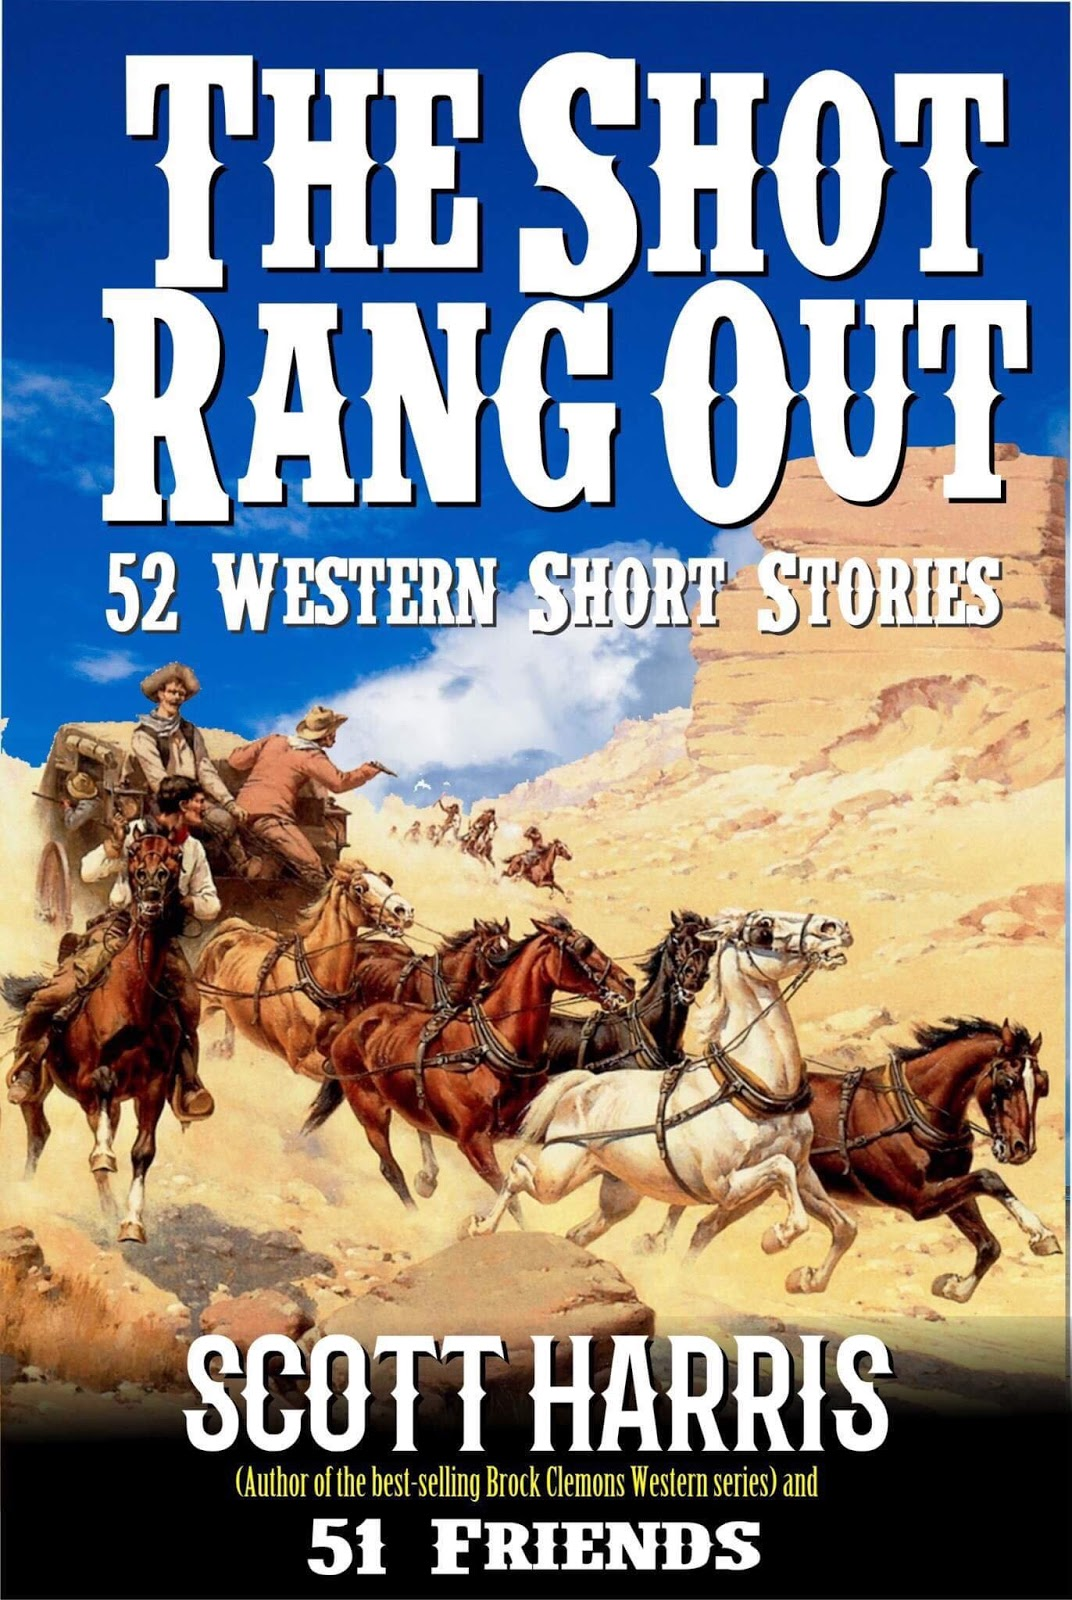 Andrew mcbride author my review of the shot rang out by scott harris and 51 friends fandeluxe Images